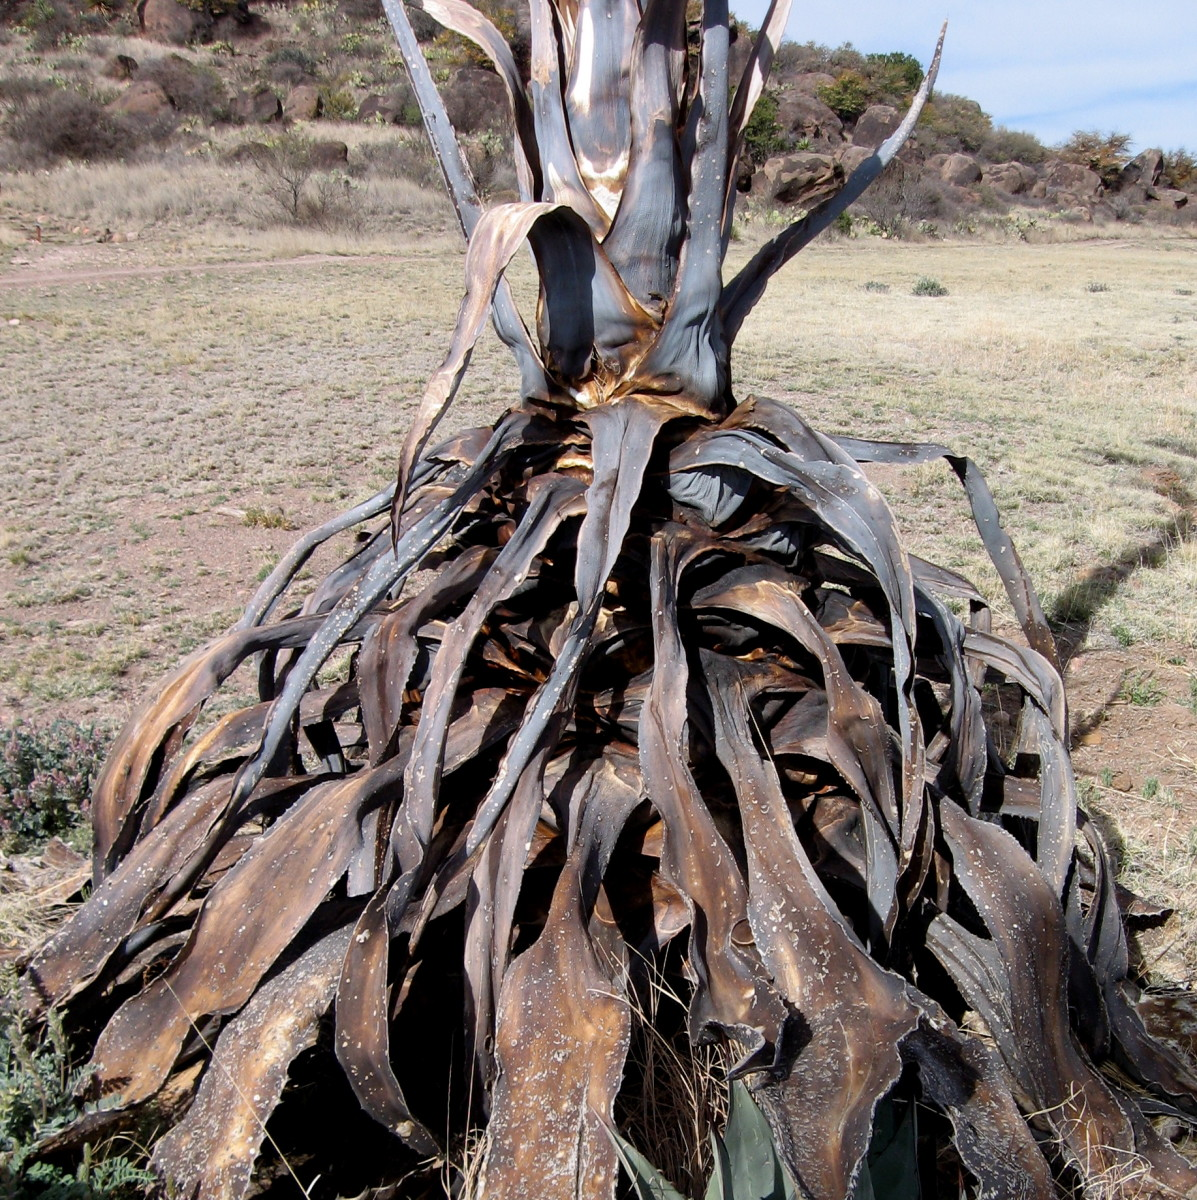 Decayed yucca plant.